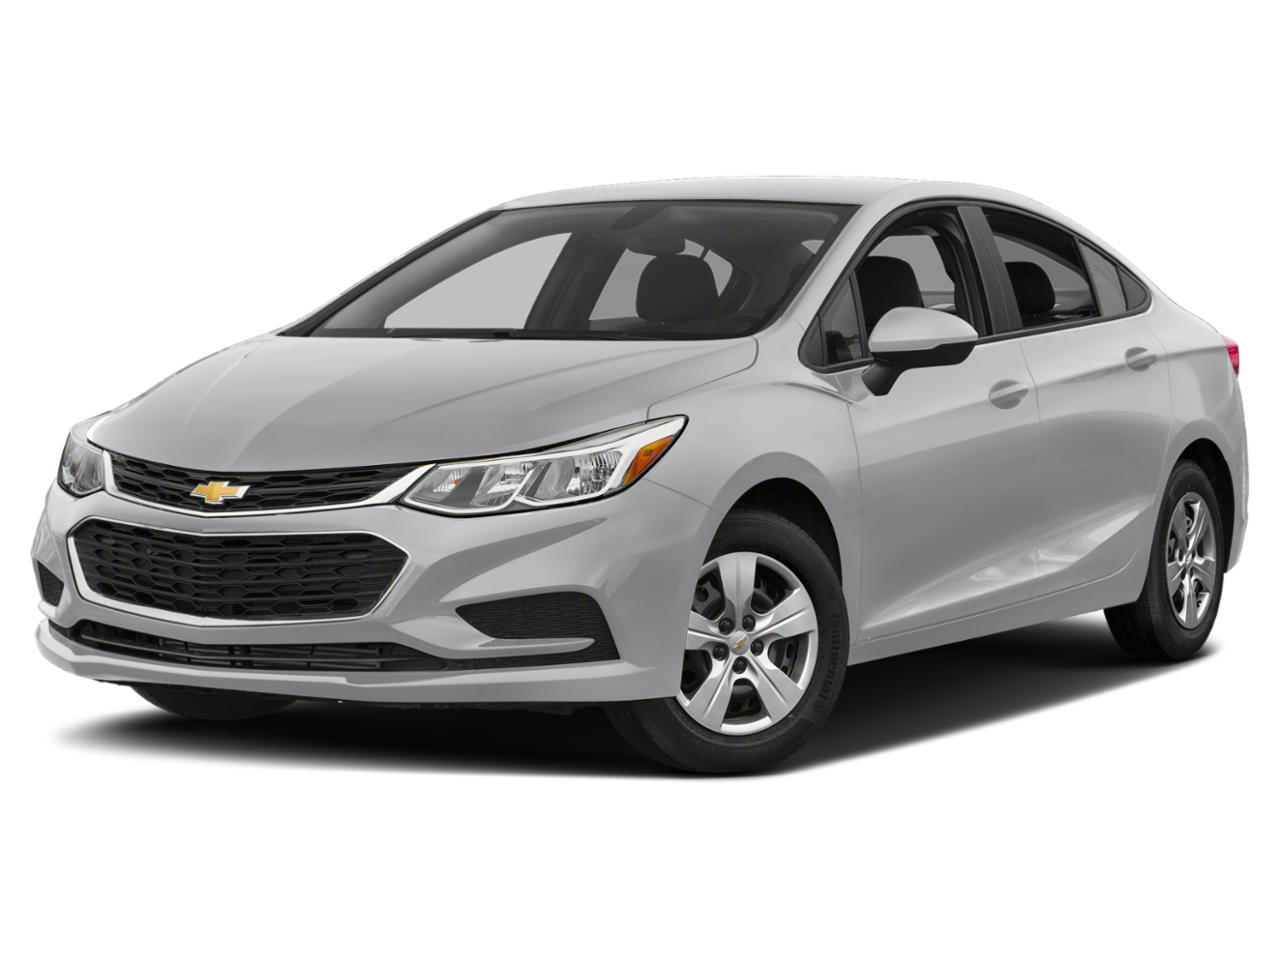 2018 Chevrolet Cruze Vehicle Photo in Jasper, GA 30143